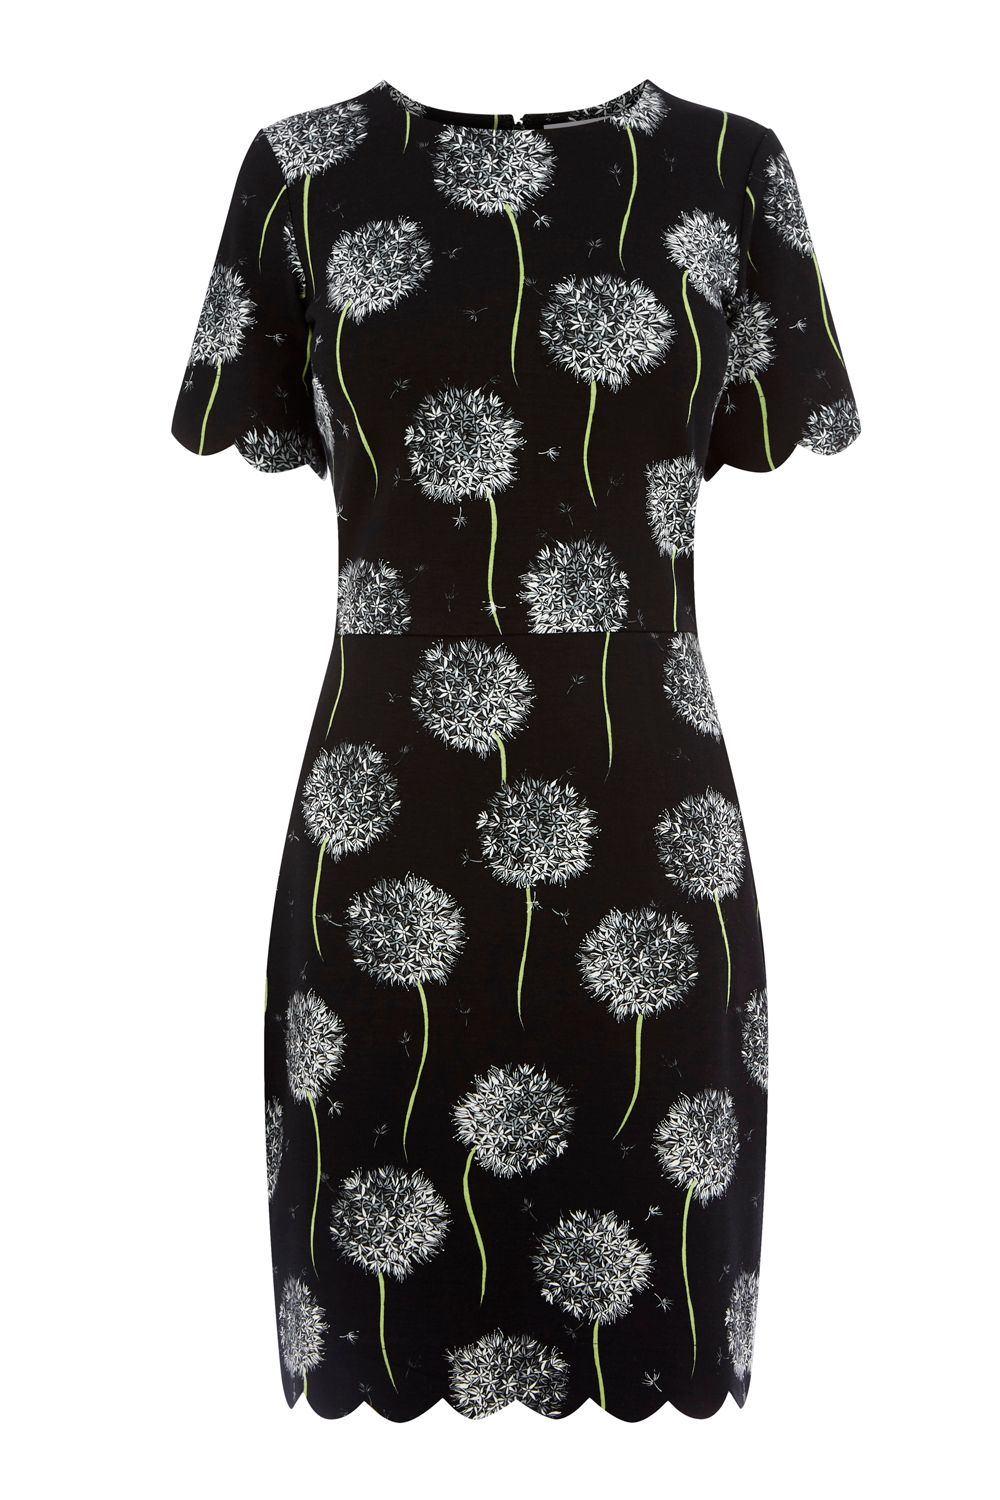 Warehouse Dandelion Print Scallop Dress, Black